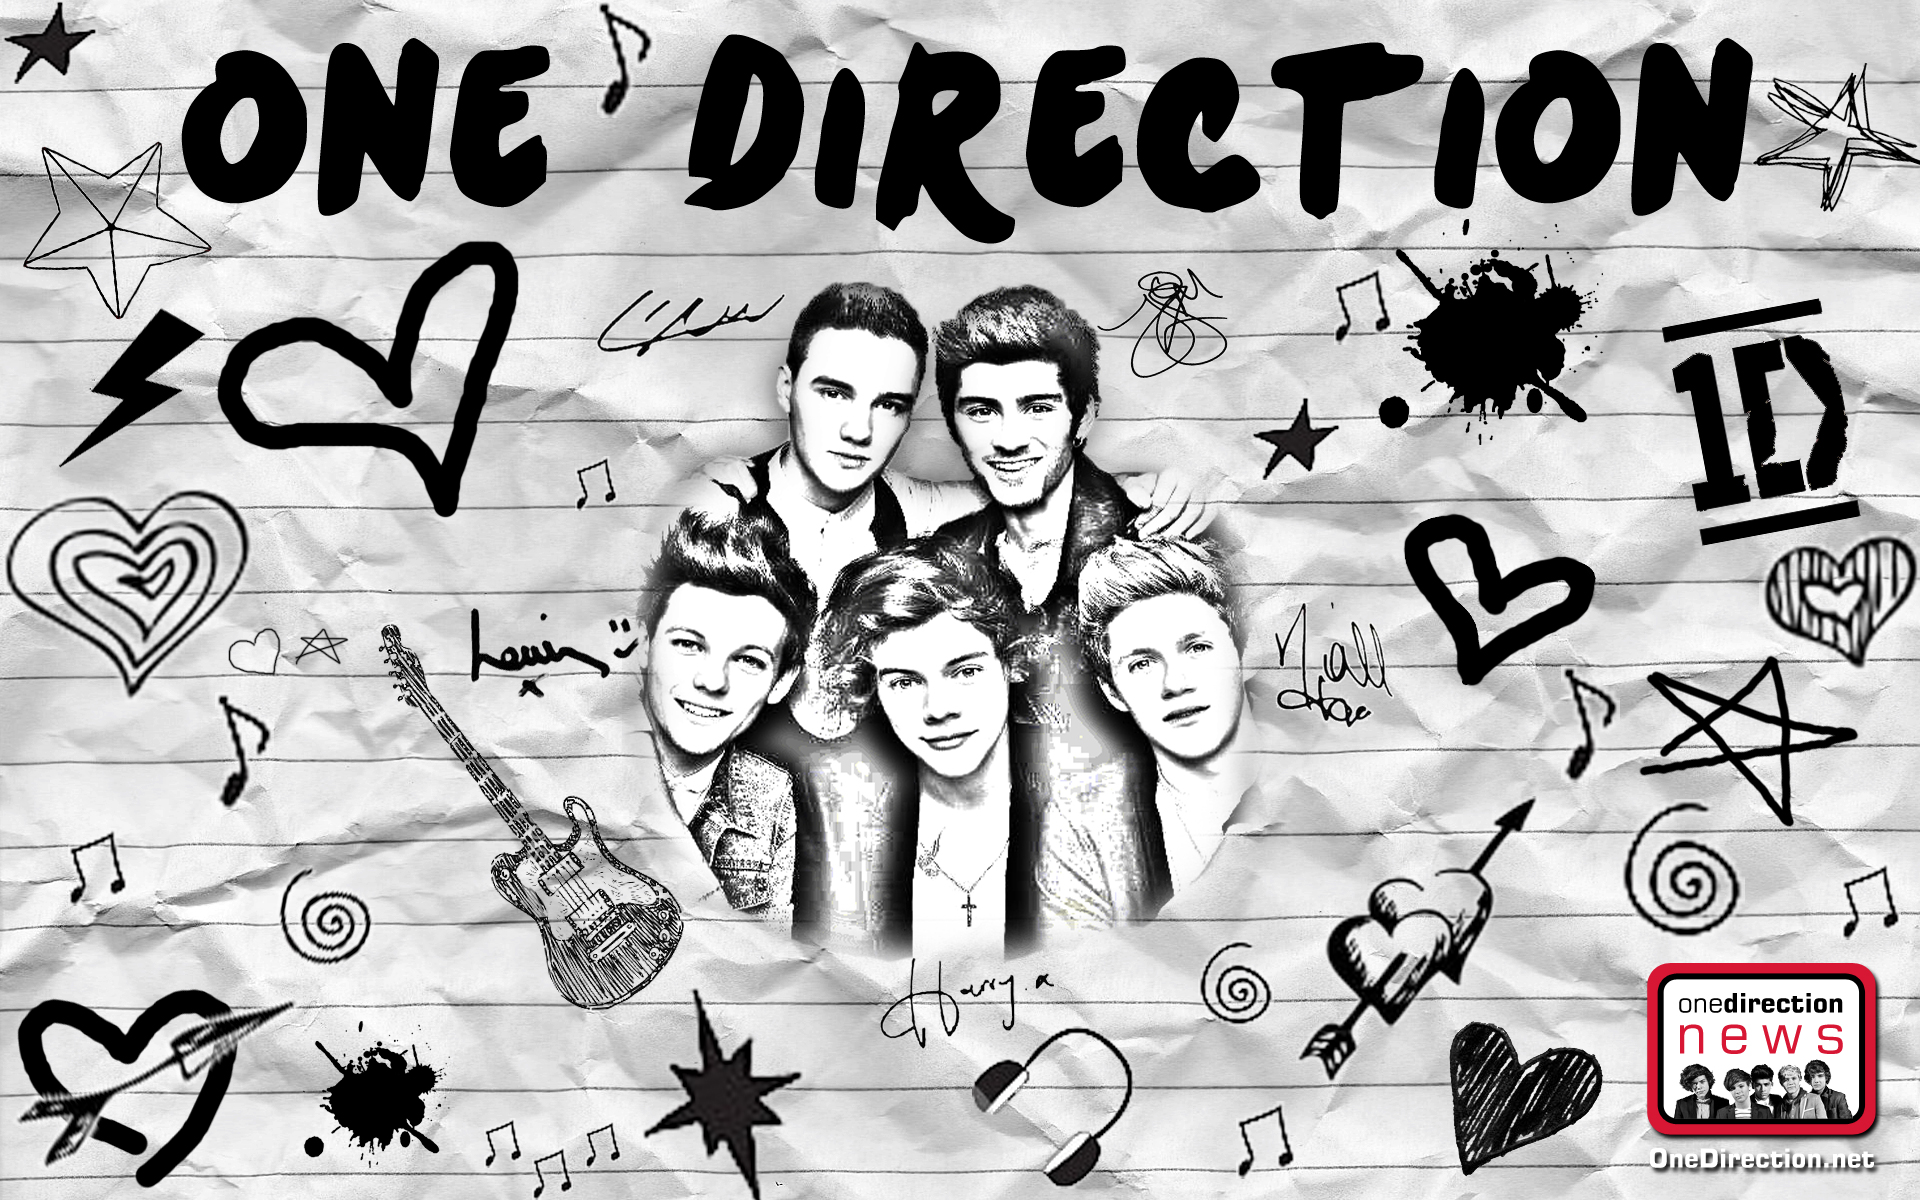 One Direction 2014 Wallpaper For Ipad Image Gallery Picture 1920x1200